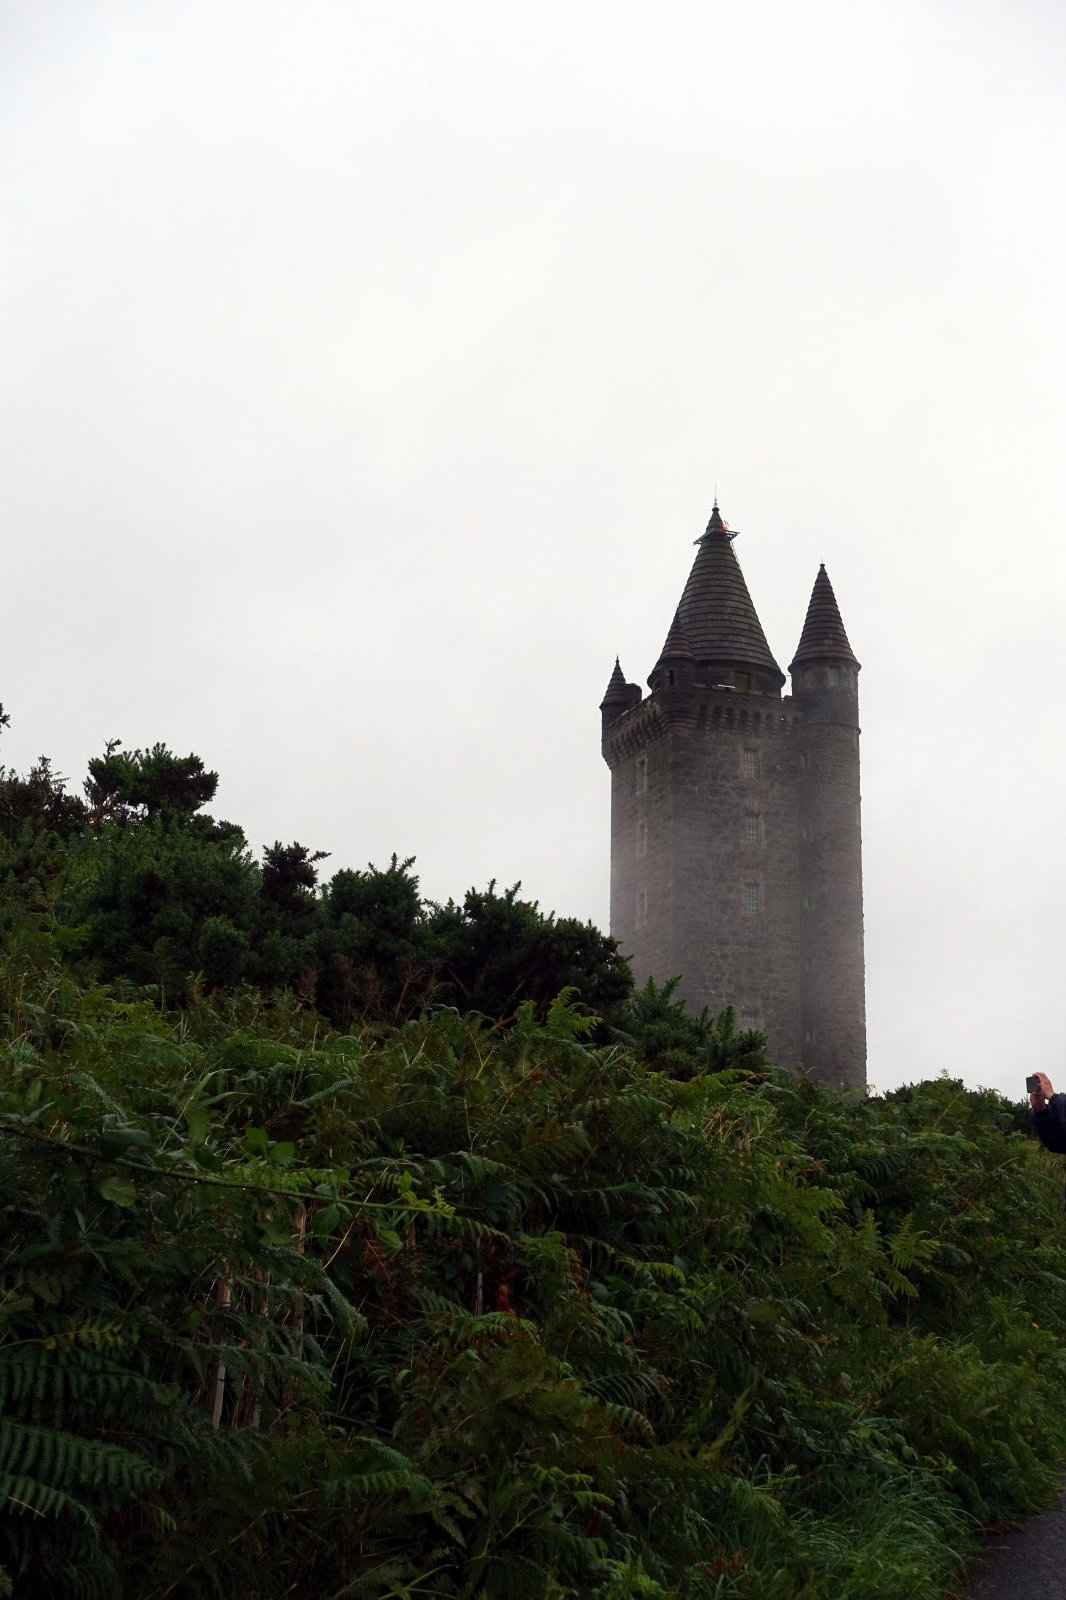 A tower covered in a fog looming above some plants.